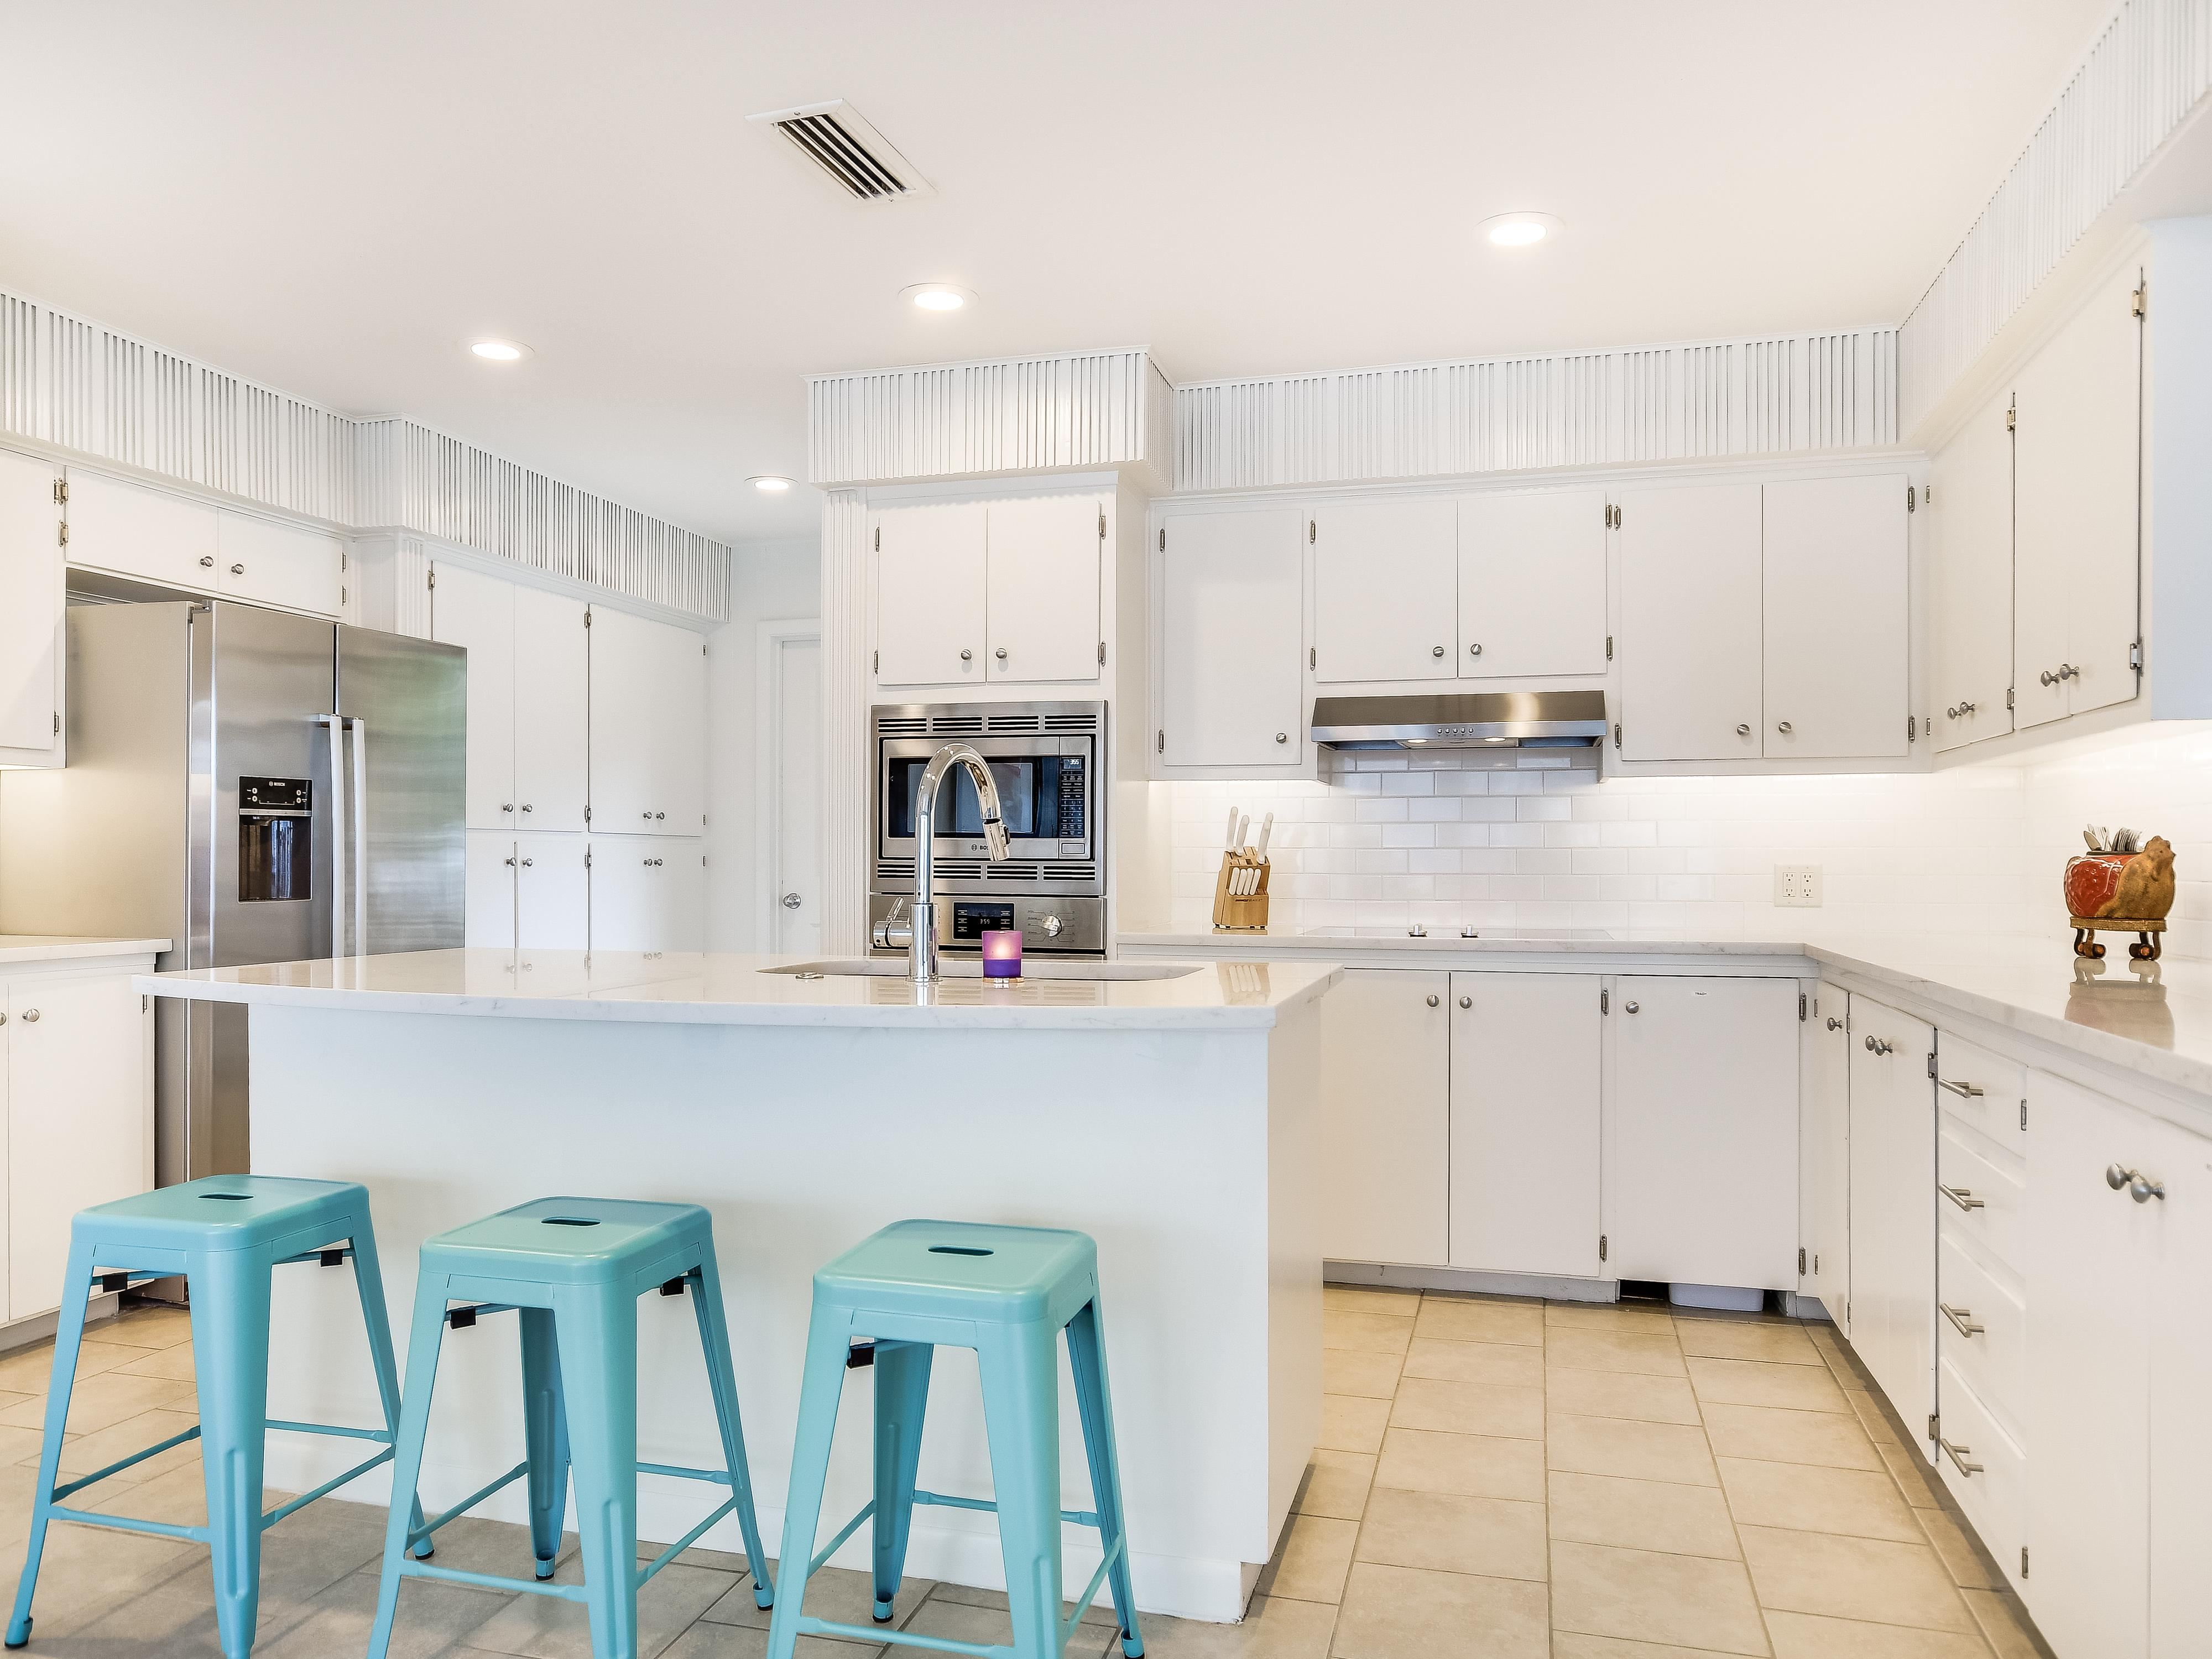 The bright white kitchen features stainless steel appliances and seating for 3 at the island.